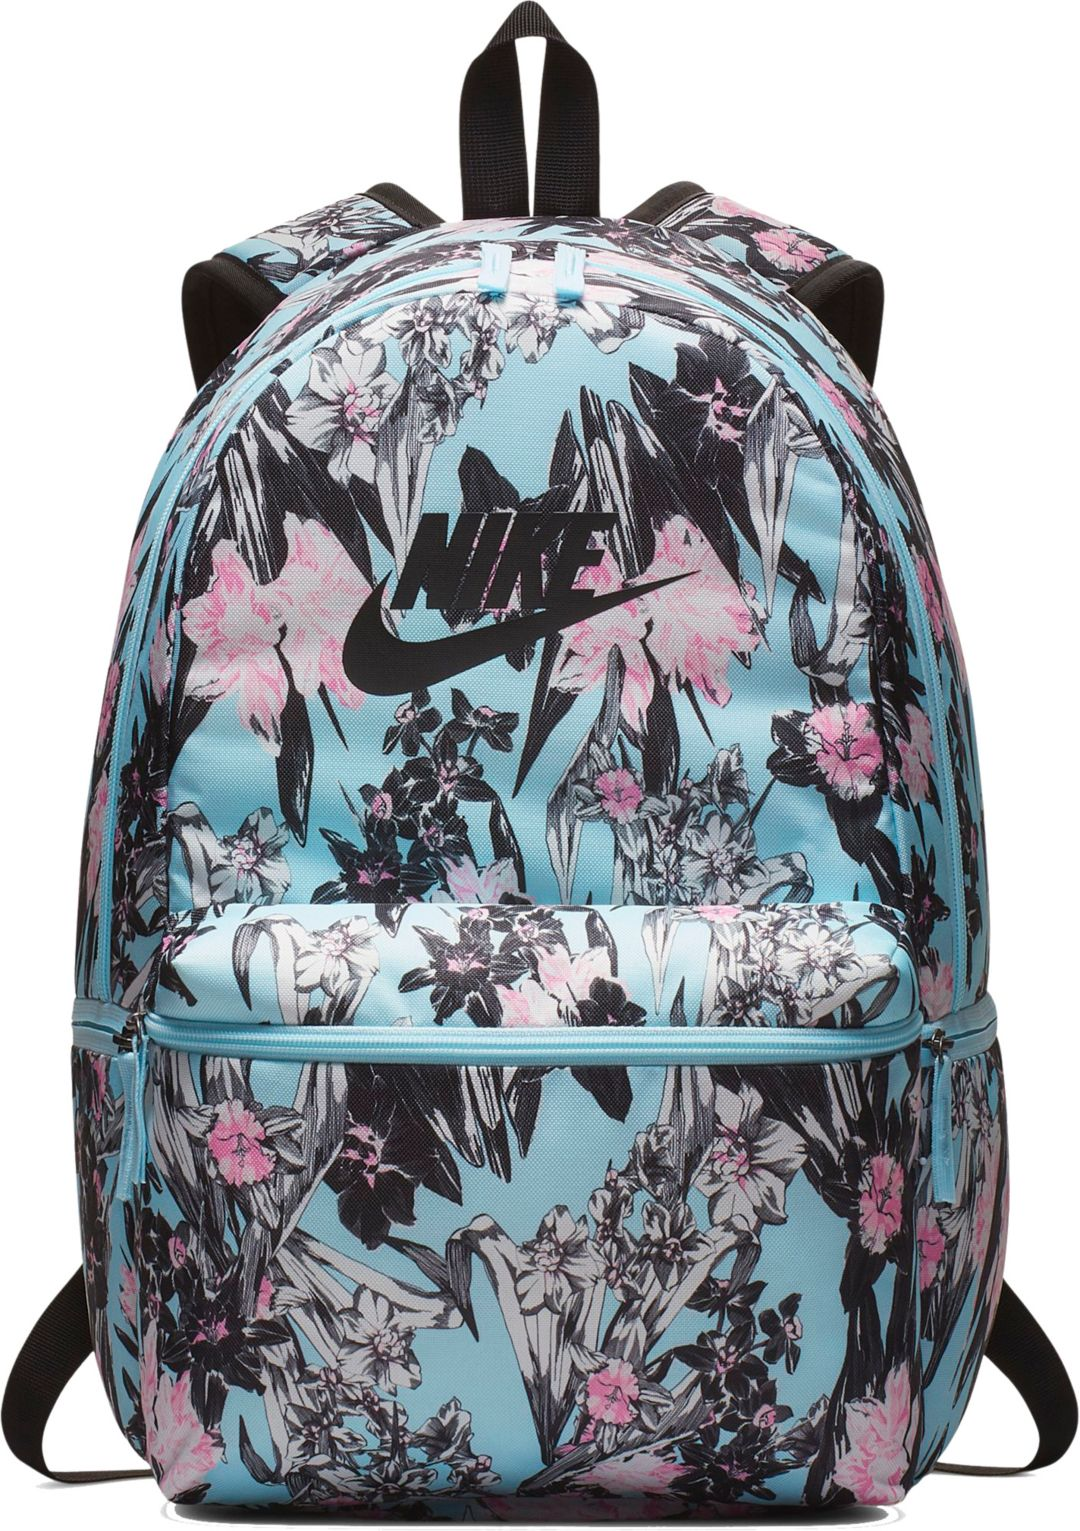 d9d4decb18fb6 Nike Women's Heritage Flower Power Backpack | DICK'S Sporting Goods